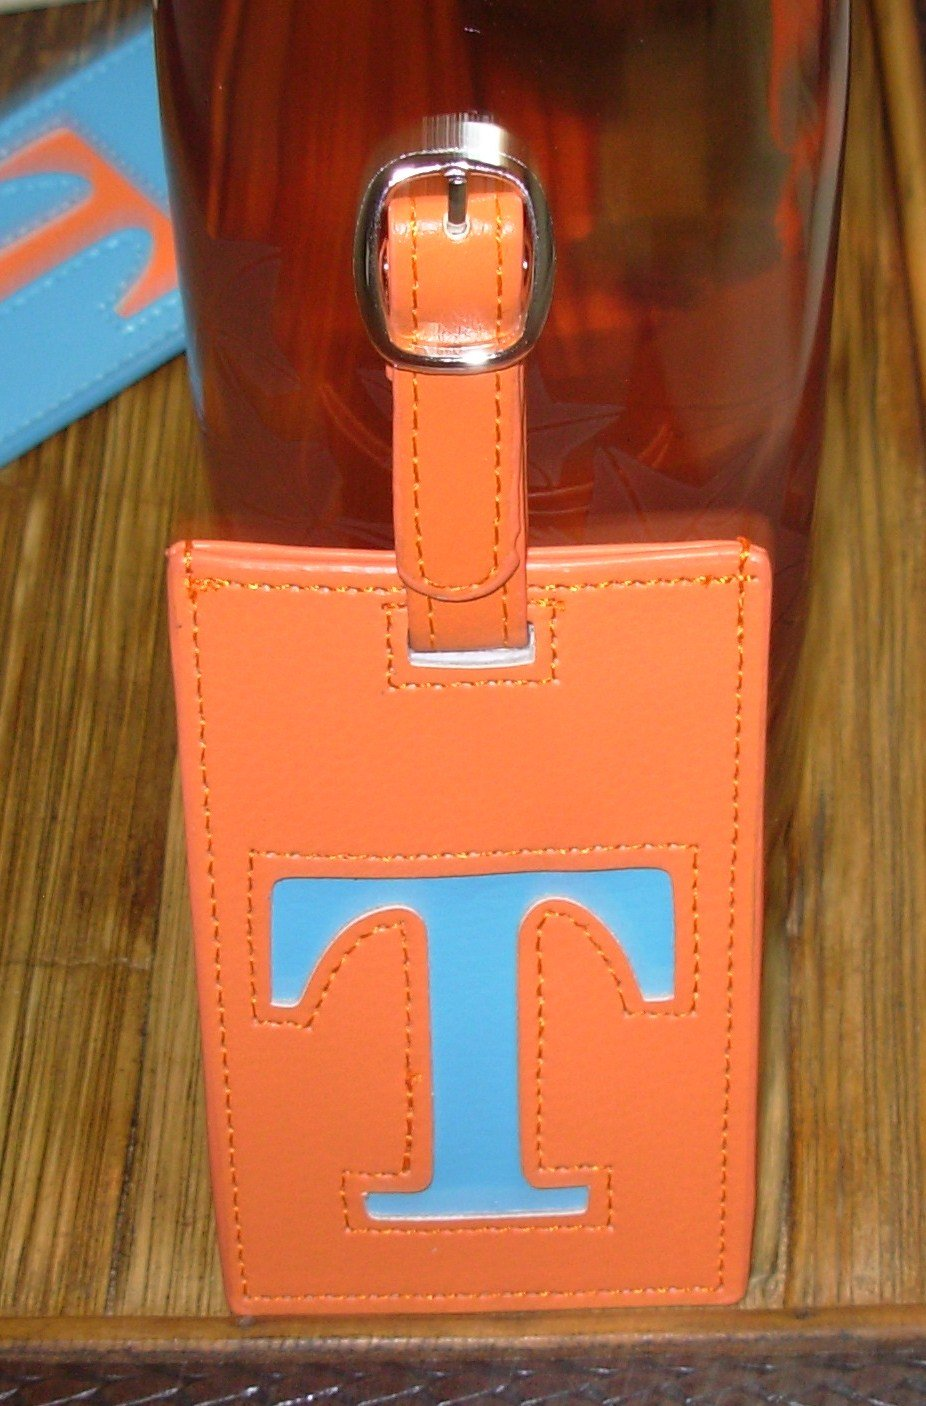 LETTER T INITIAL LUGGAGE TAG NEW GANZ IN ORANGE WITH A BLUE LETTER T VINYL